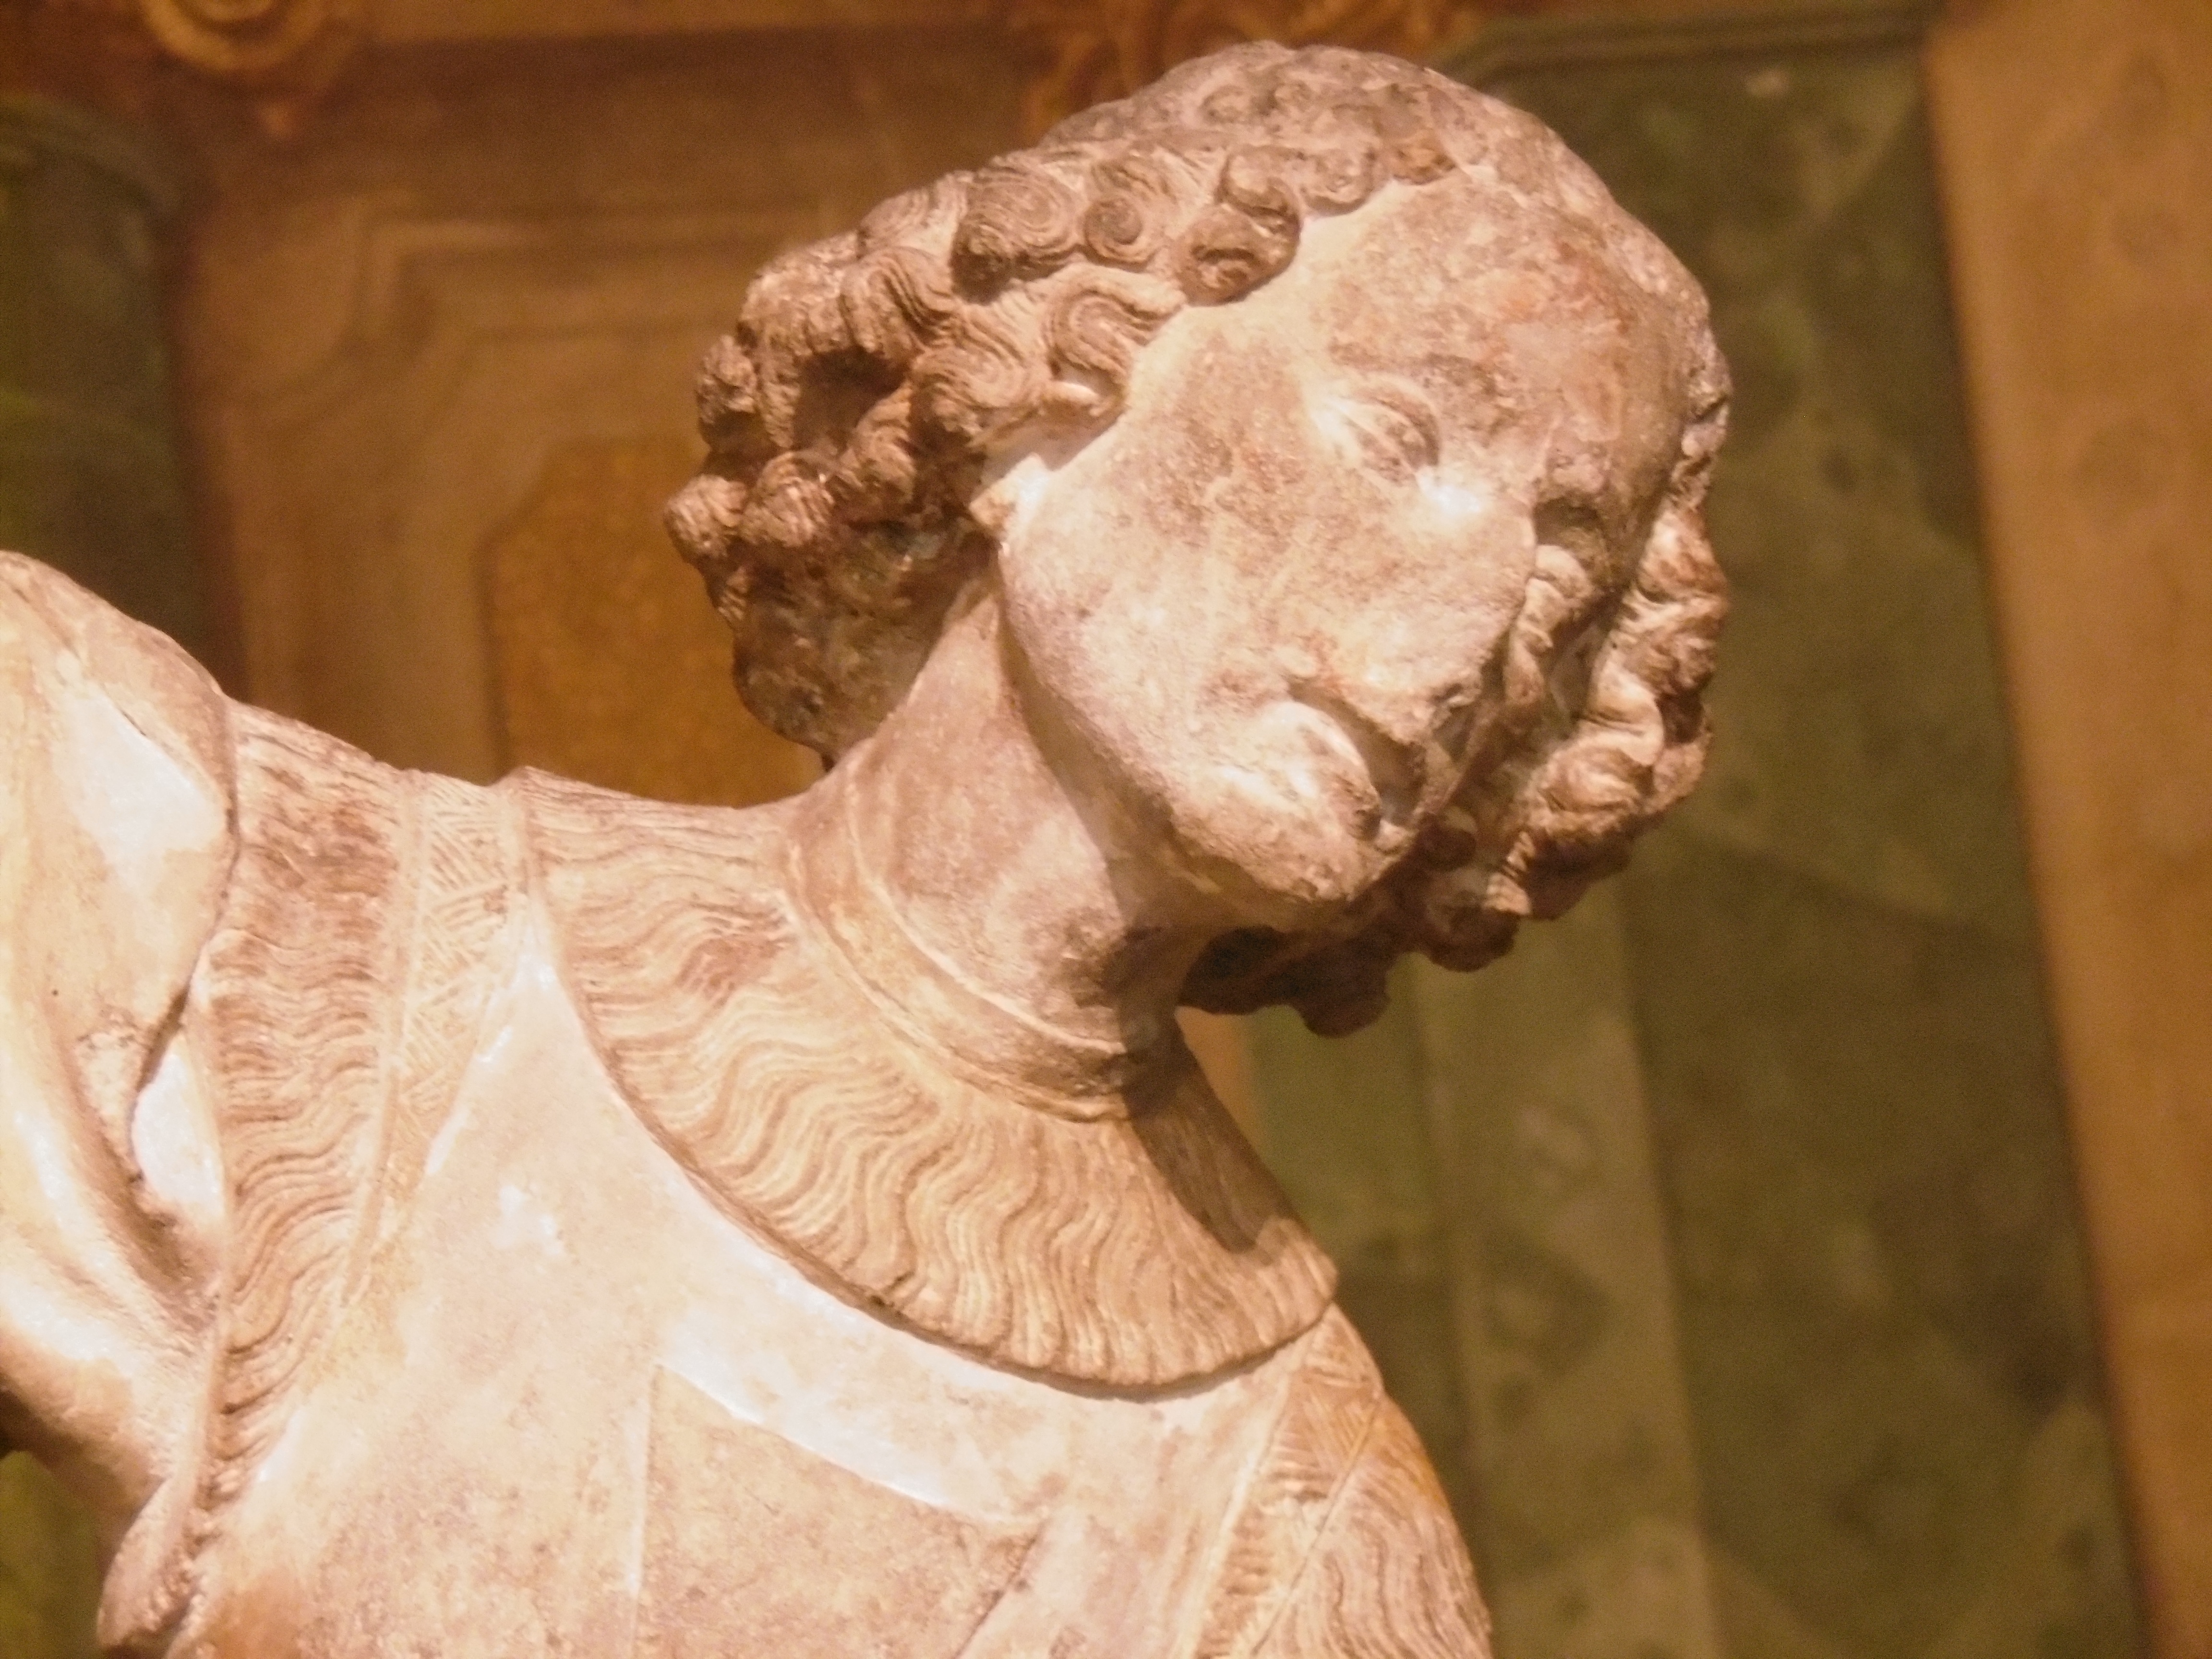 The face of a limestone statue of St. George in the Belvedere, Wien